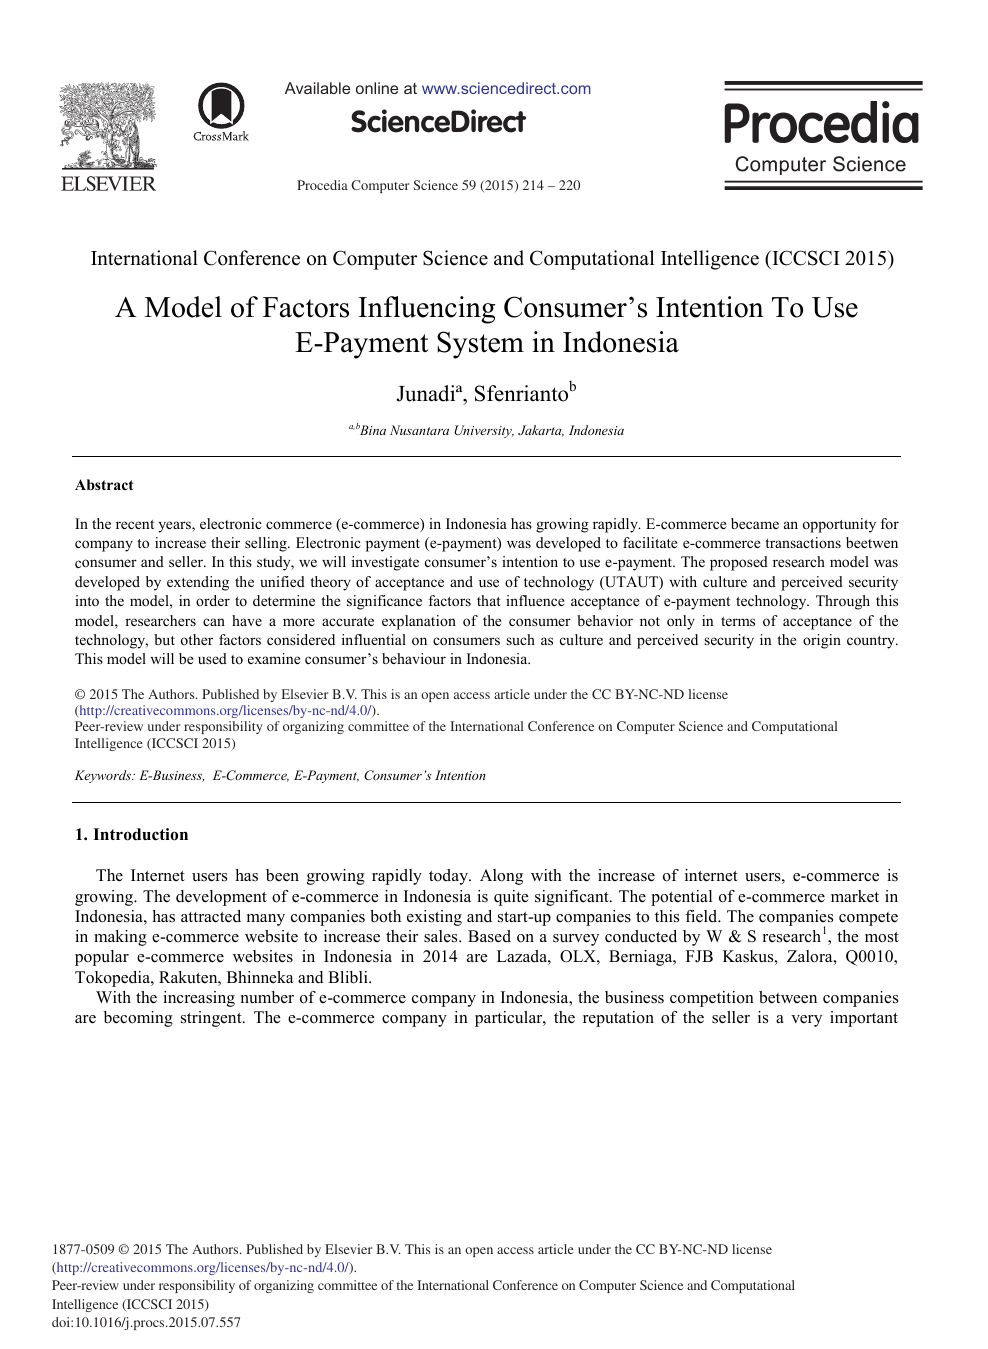 A Model of Factors Influencing Consumer's Intention To Use E-payment